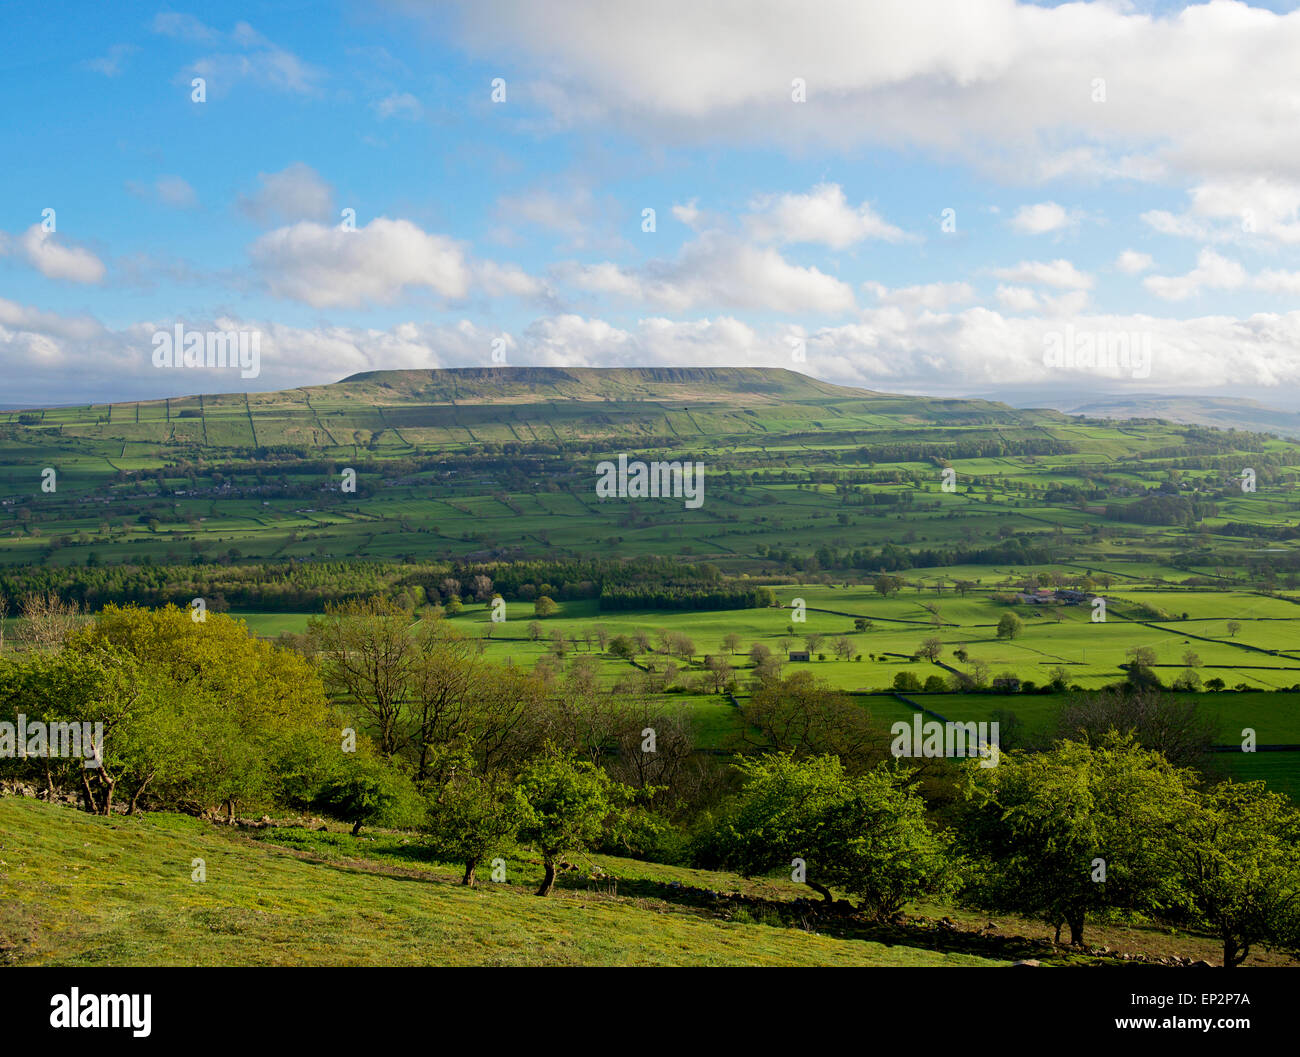 wensleydale-and-penhill-yorkshire-dales-national-park-north-yorkshire-EP2P7A.jpg